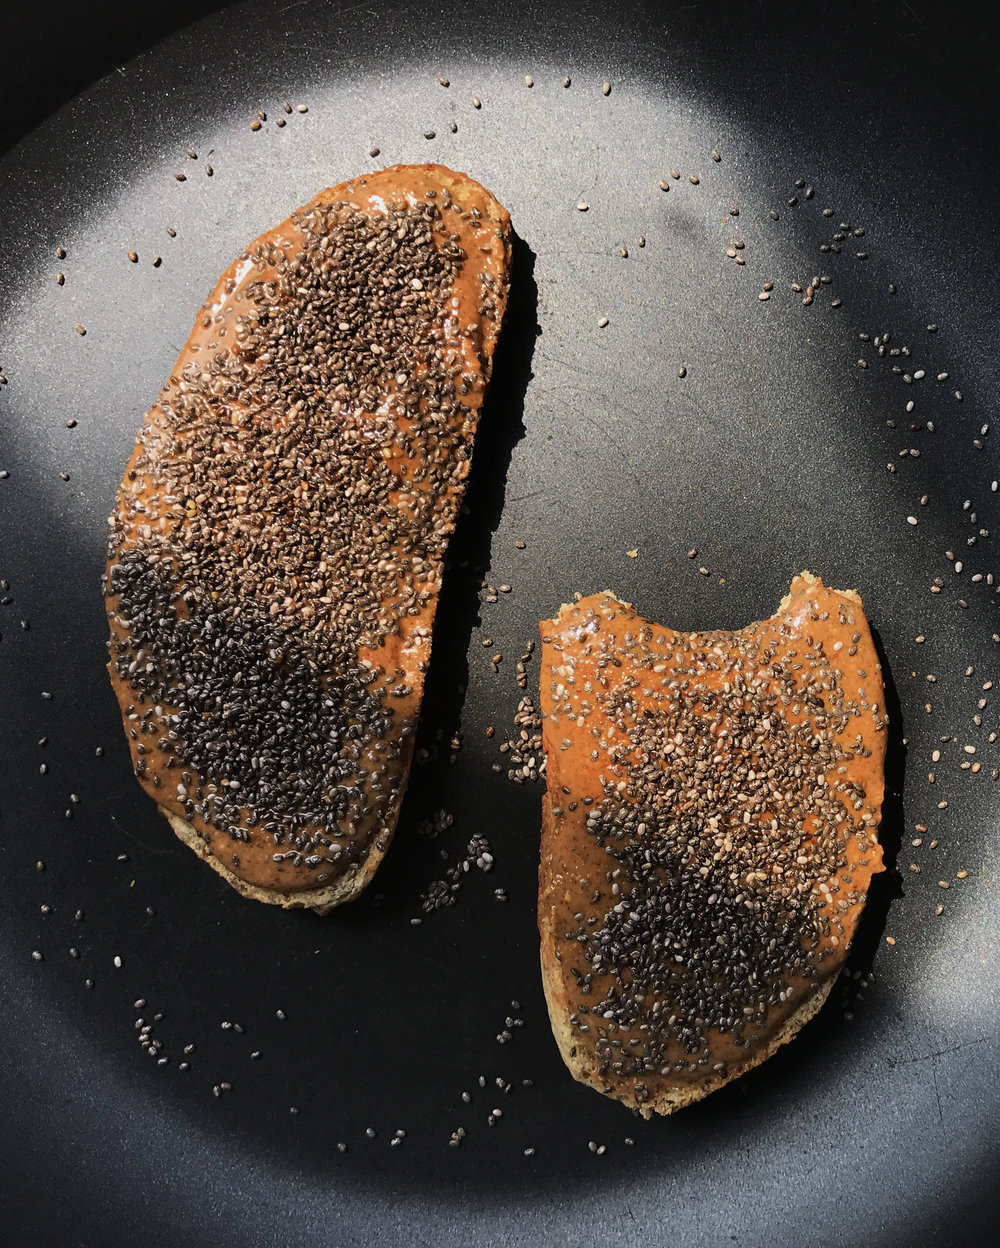 NUT BUTTER TOAST WITH CHIA .jpg